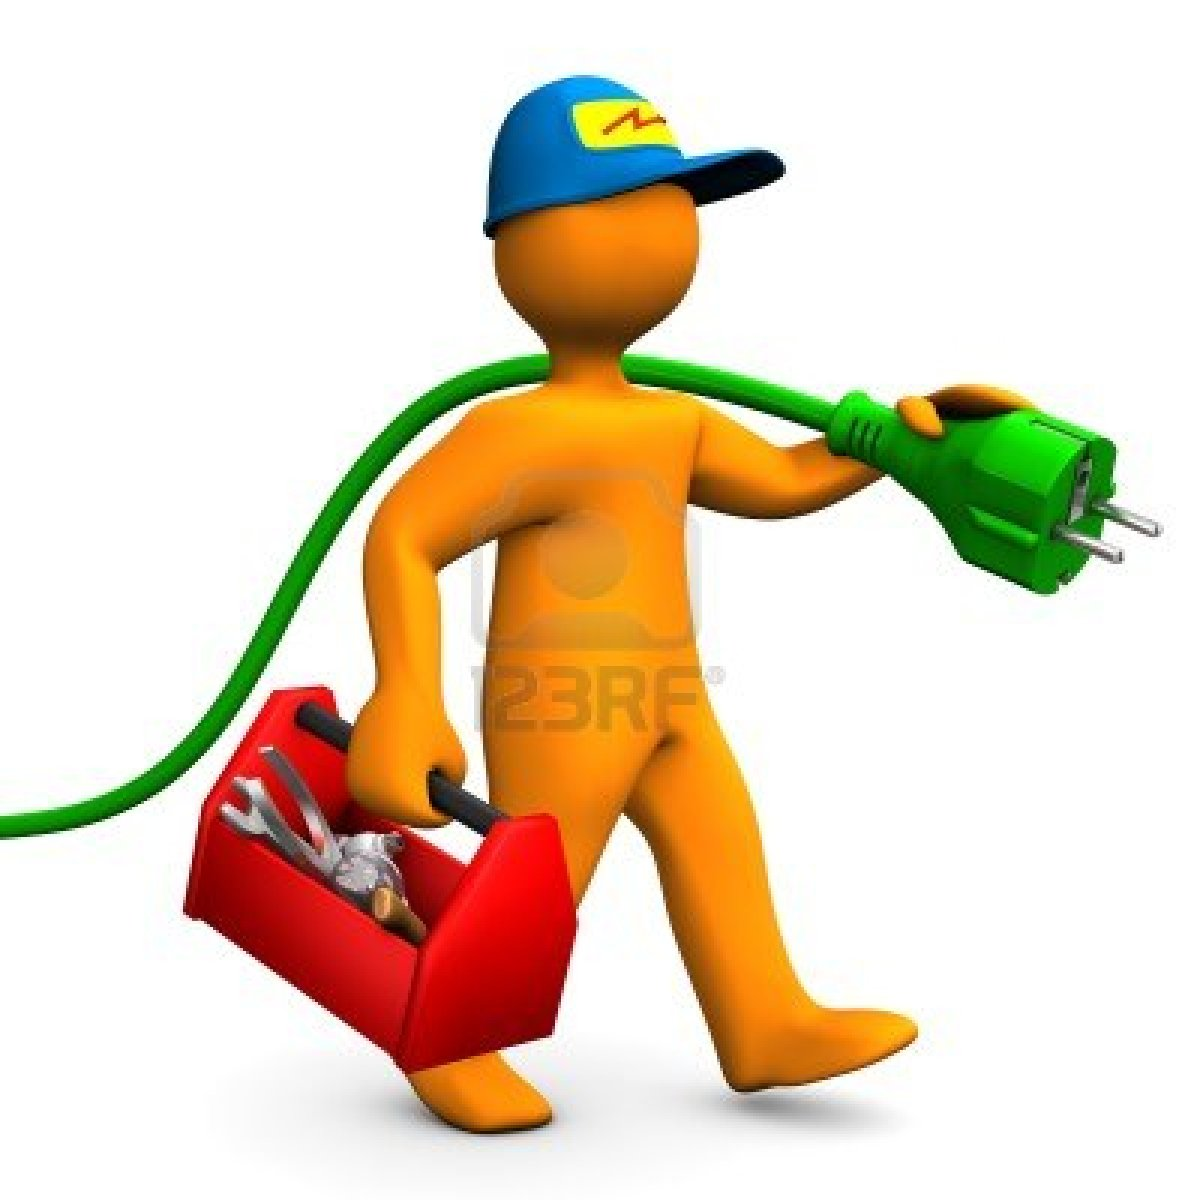 Cartoon Pictures Of Motorcycles also Stock Photos Grunge Under Construction Image8534053 as well Solid Line With Three Marks Represent Piping And Instrument Diagram furthermore Lose Space Heater Gain Heat Pump in addition National Joinery Firm Gets Big Lift Hird Mini Crane. on animated electric repair